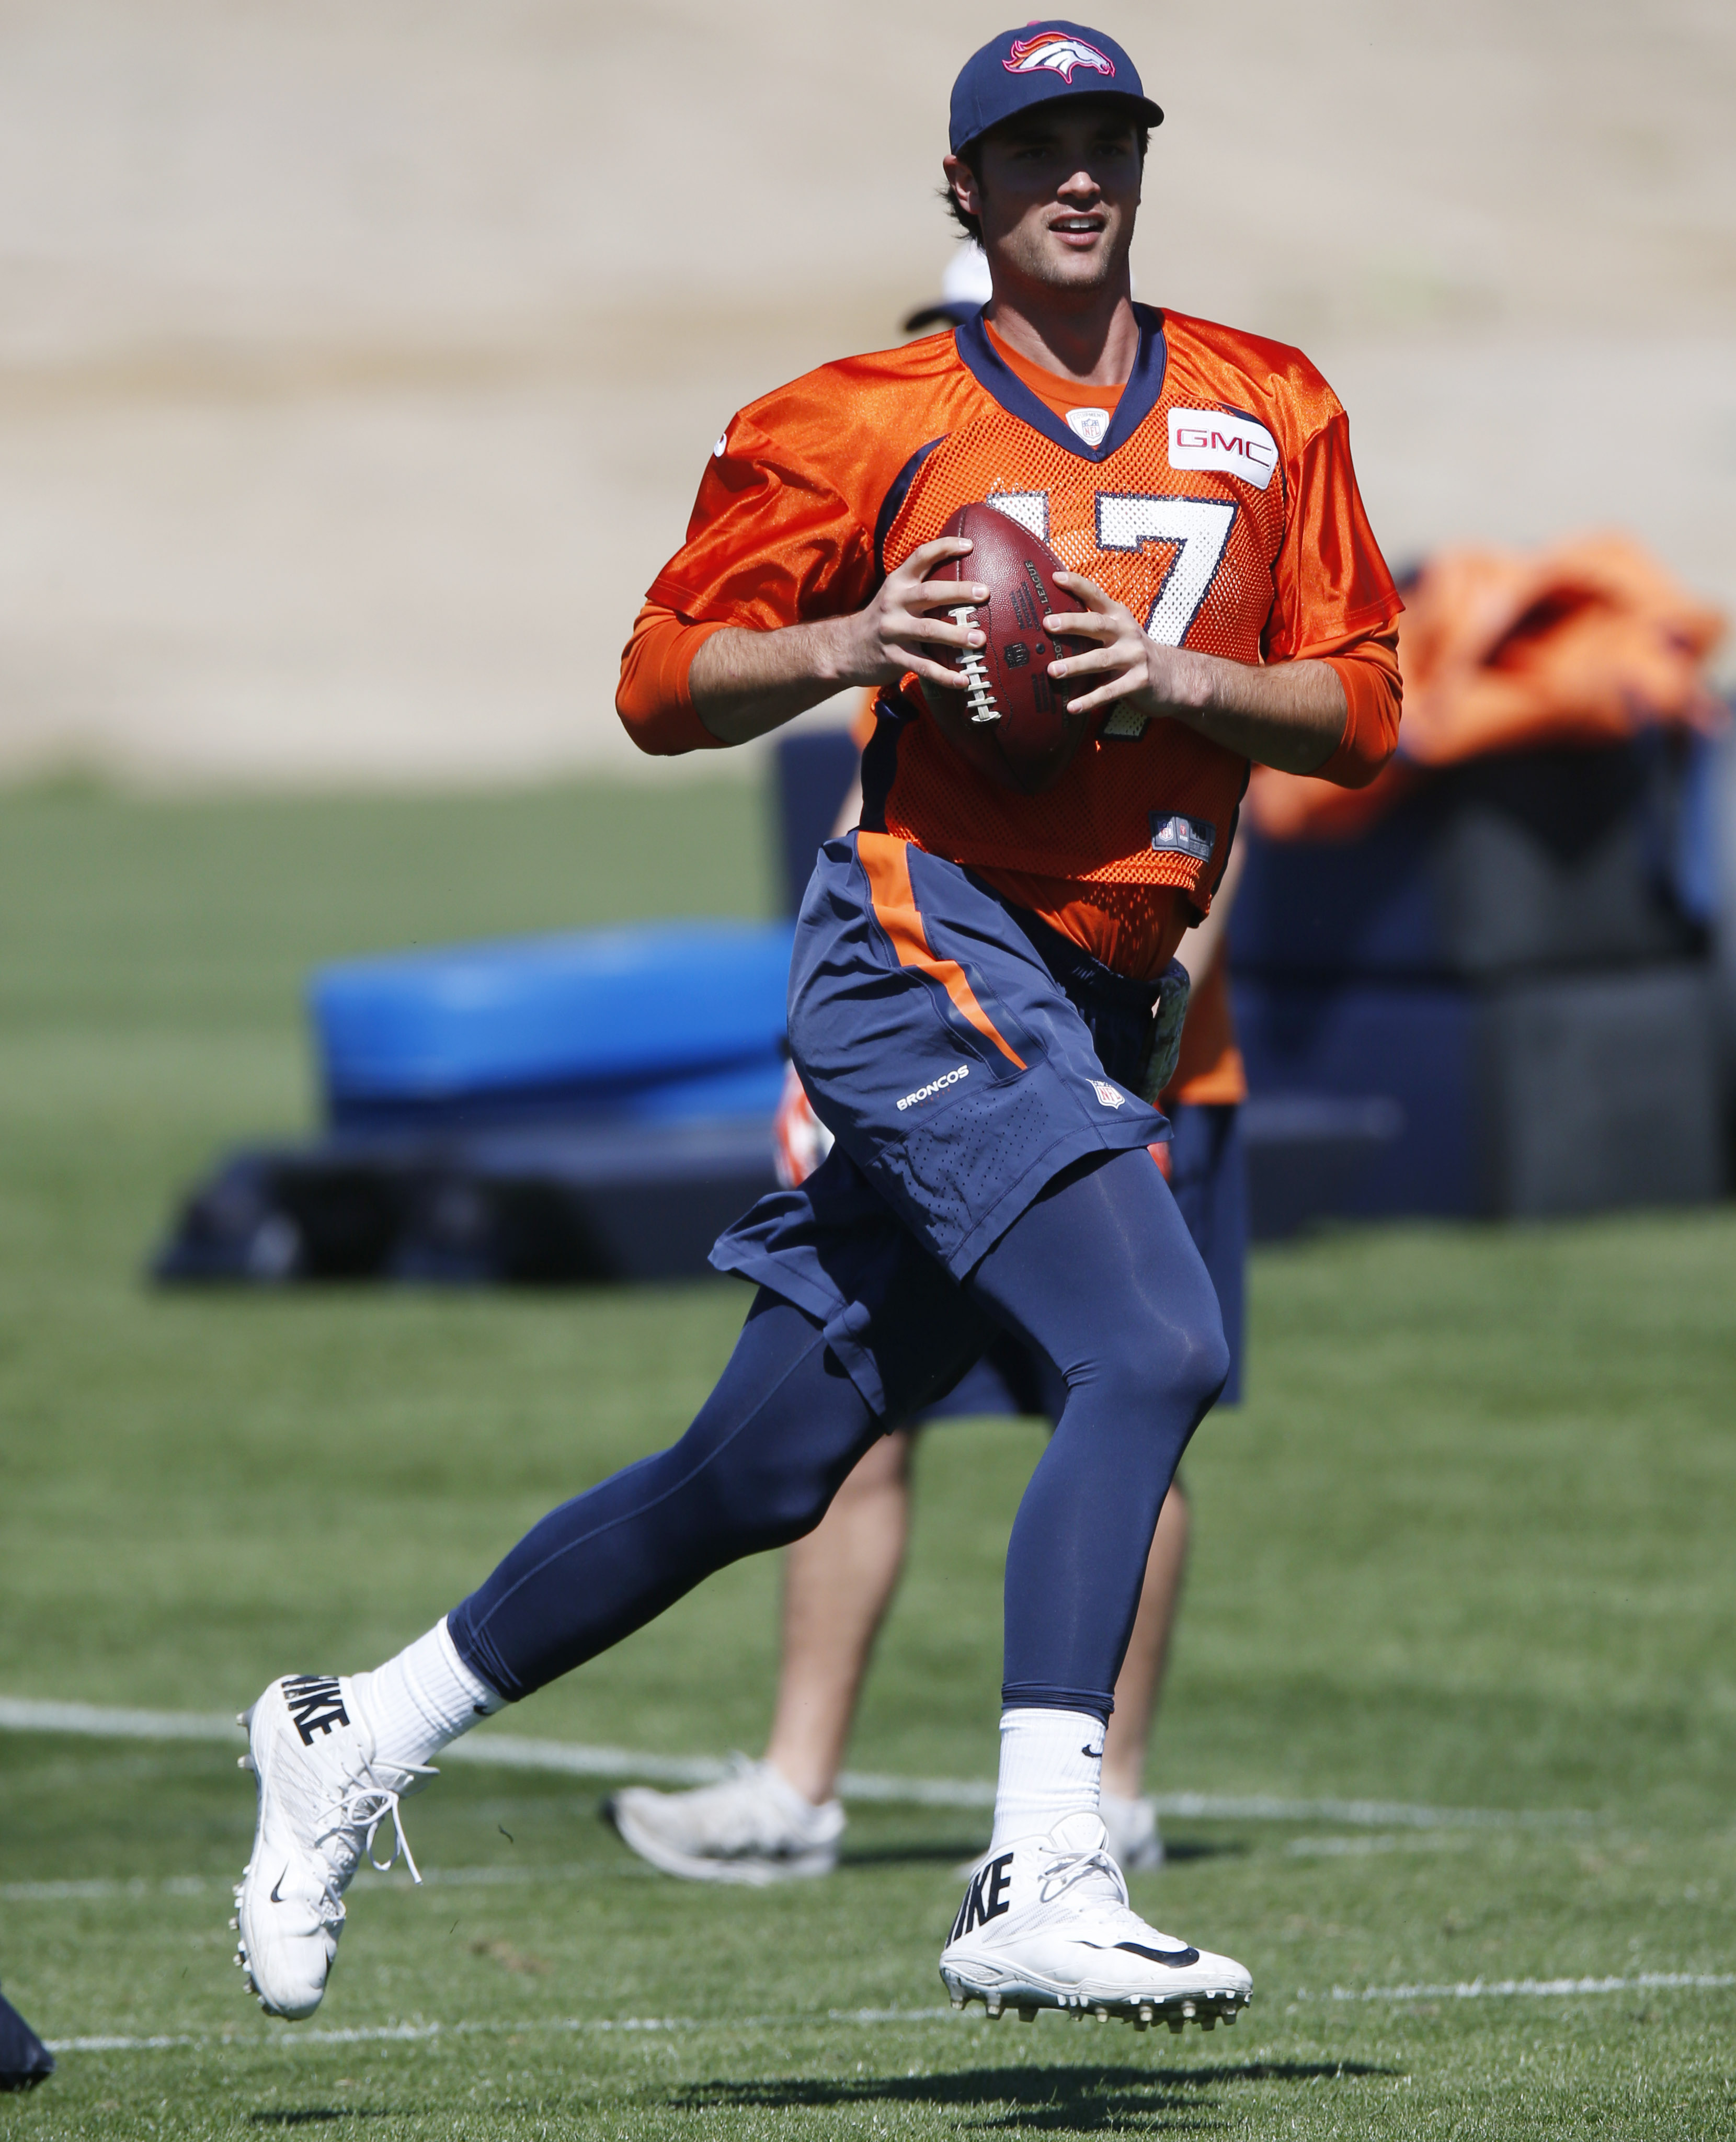 FILE - In this April 29, 2015, file photo, Denver Broncos quarterback Brock Osweiler completes a drill during the second day of the NFL football team's two-day voluntary veterans minicamp in Englewood, Colo. Brock Osweiler got married this offseason and t